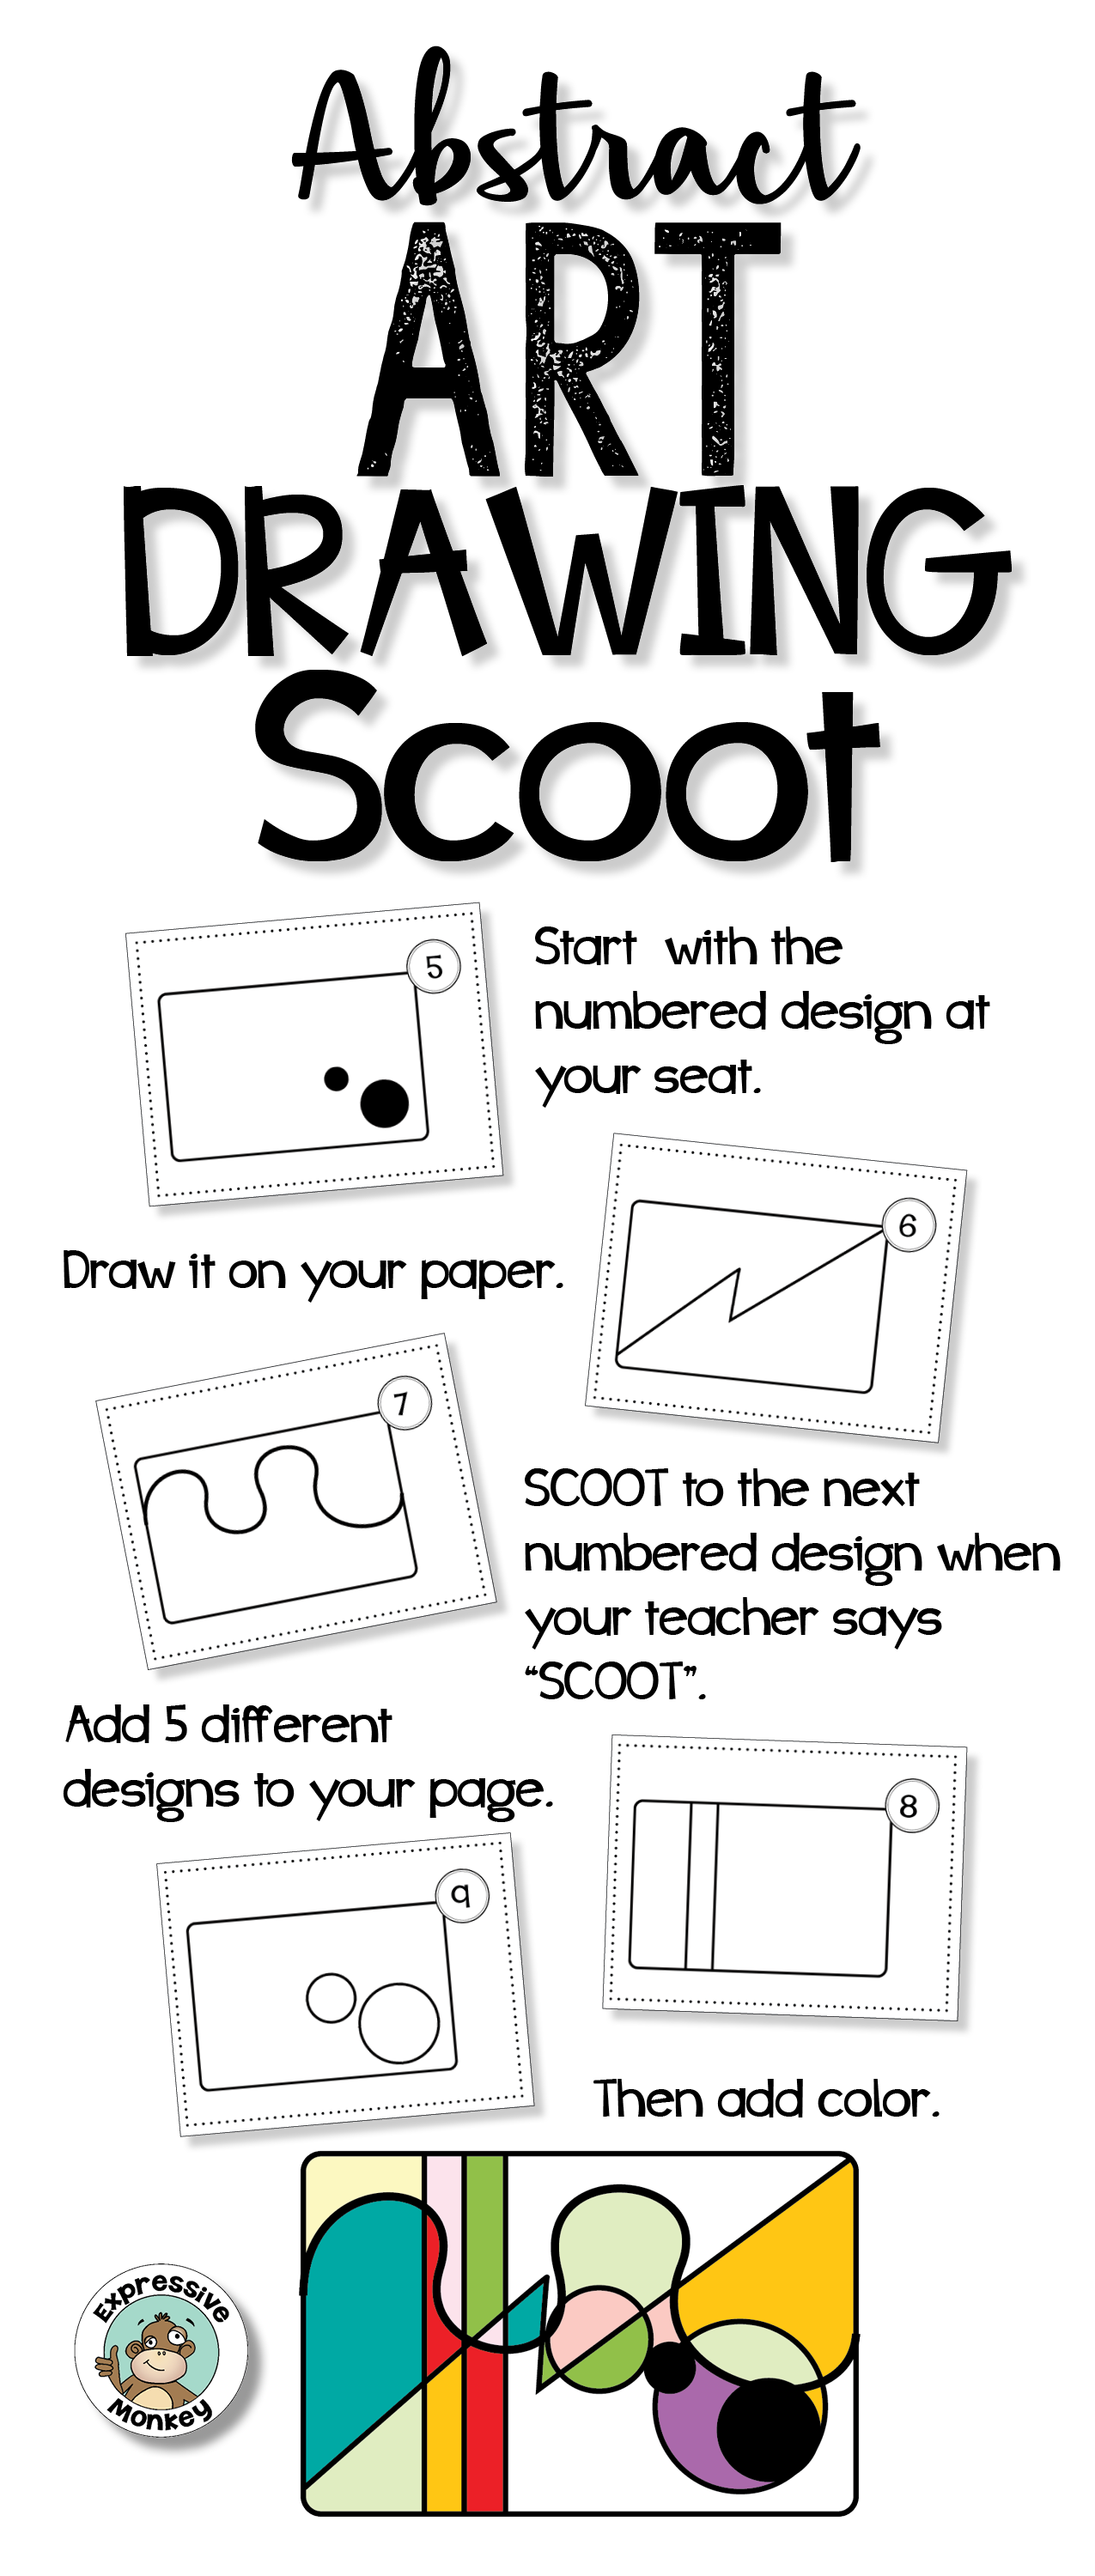 This fun game is a great way to get students drawing abstract designs